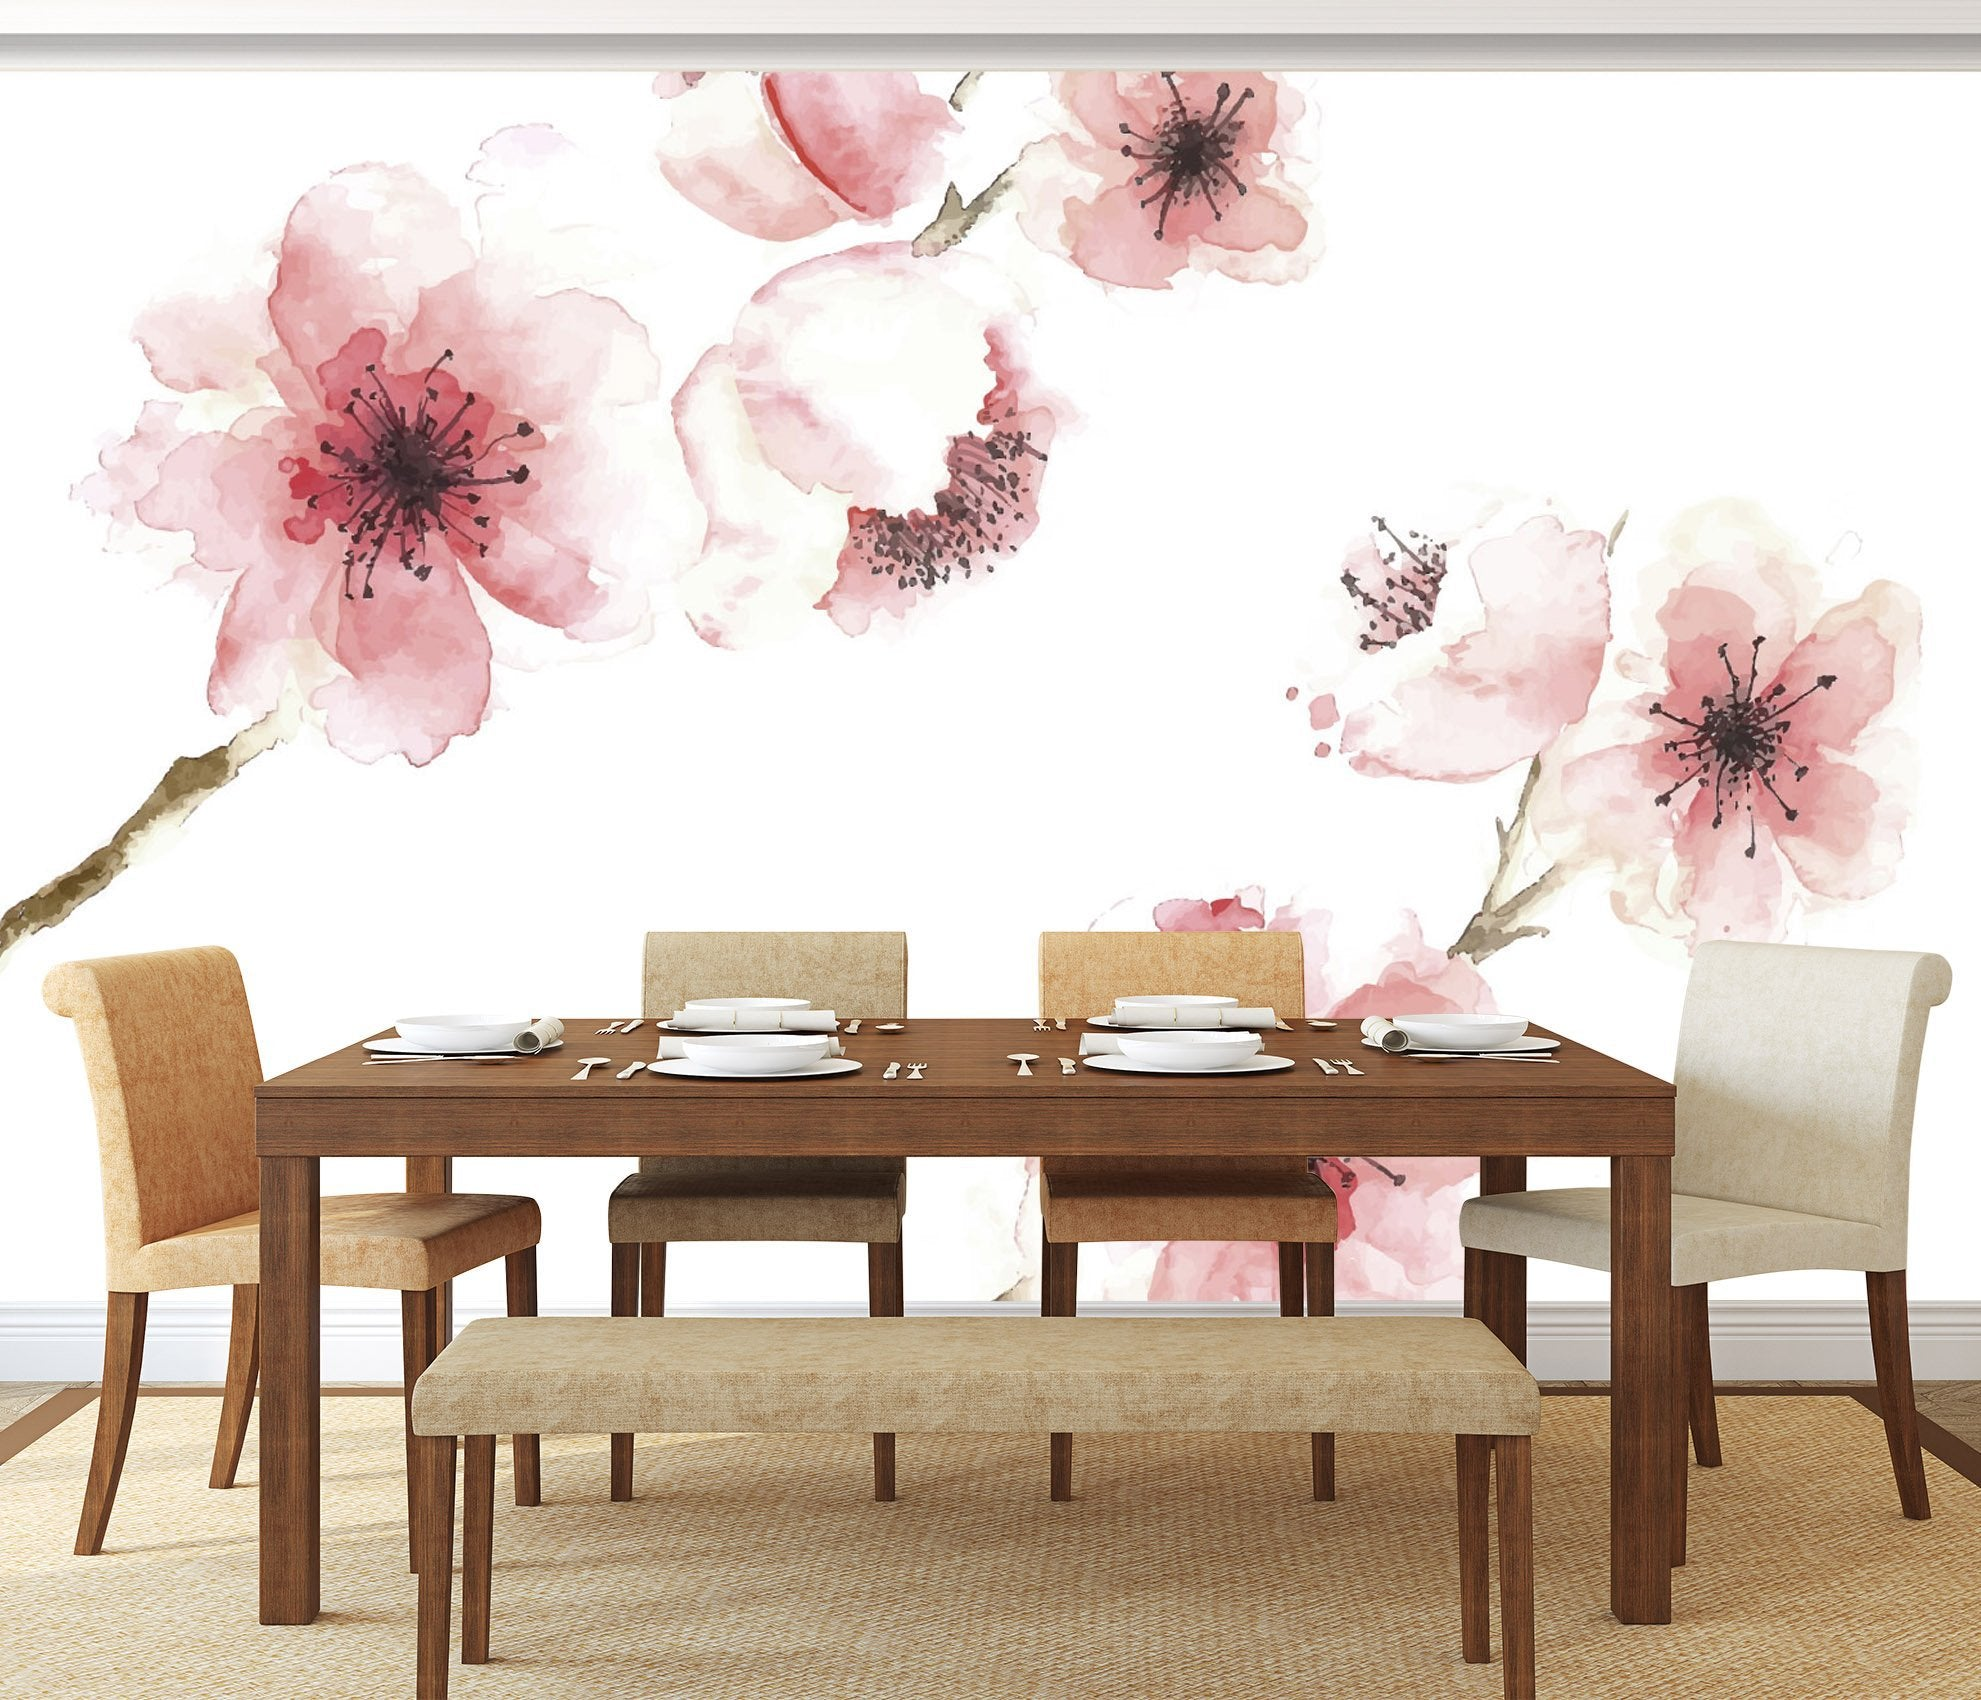 3D Plum Blossom 030 Wallpaper AJ Wallpaper